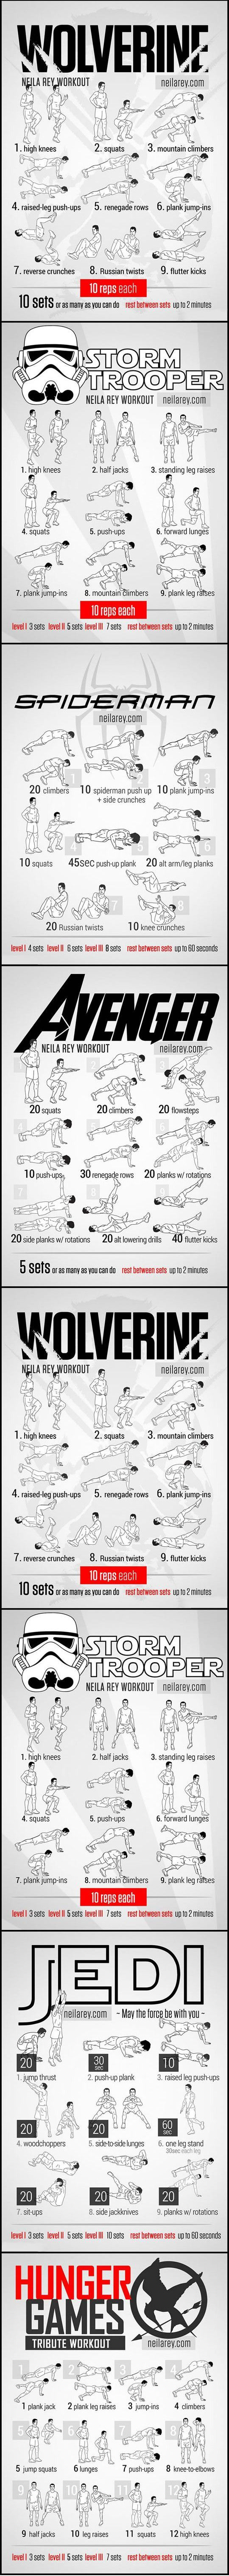 Movie workout routines.